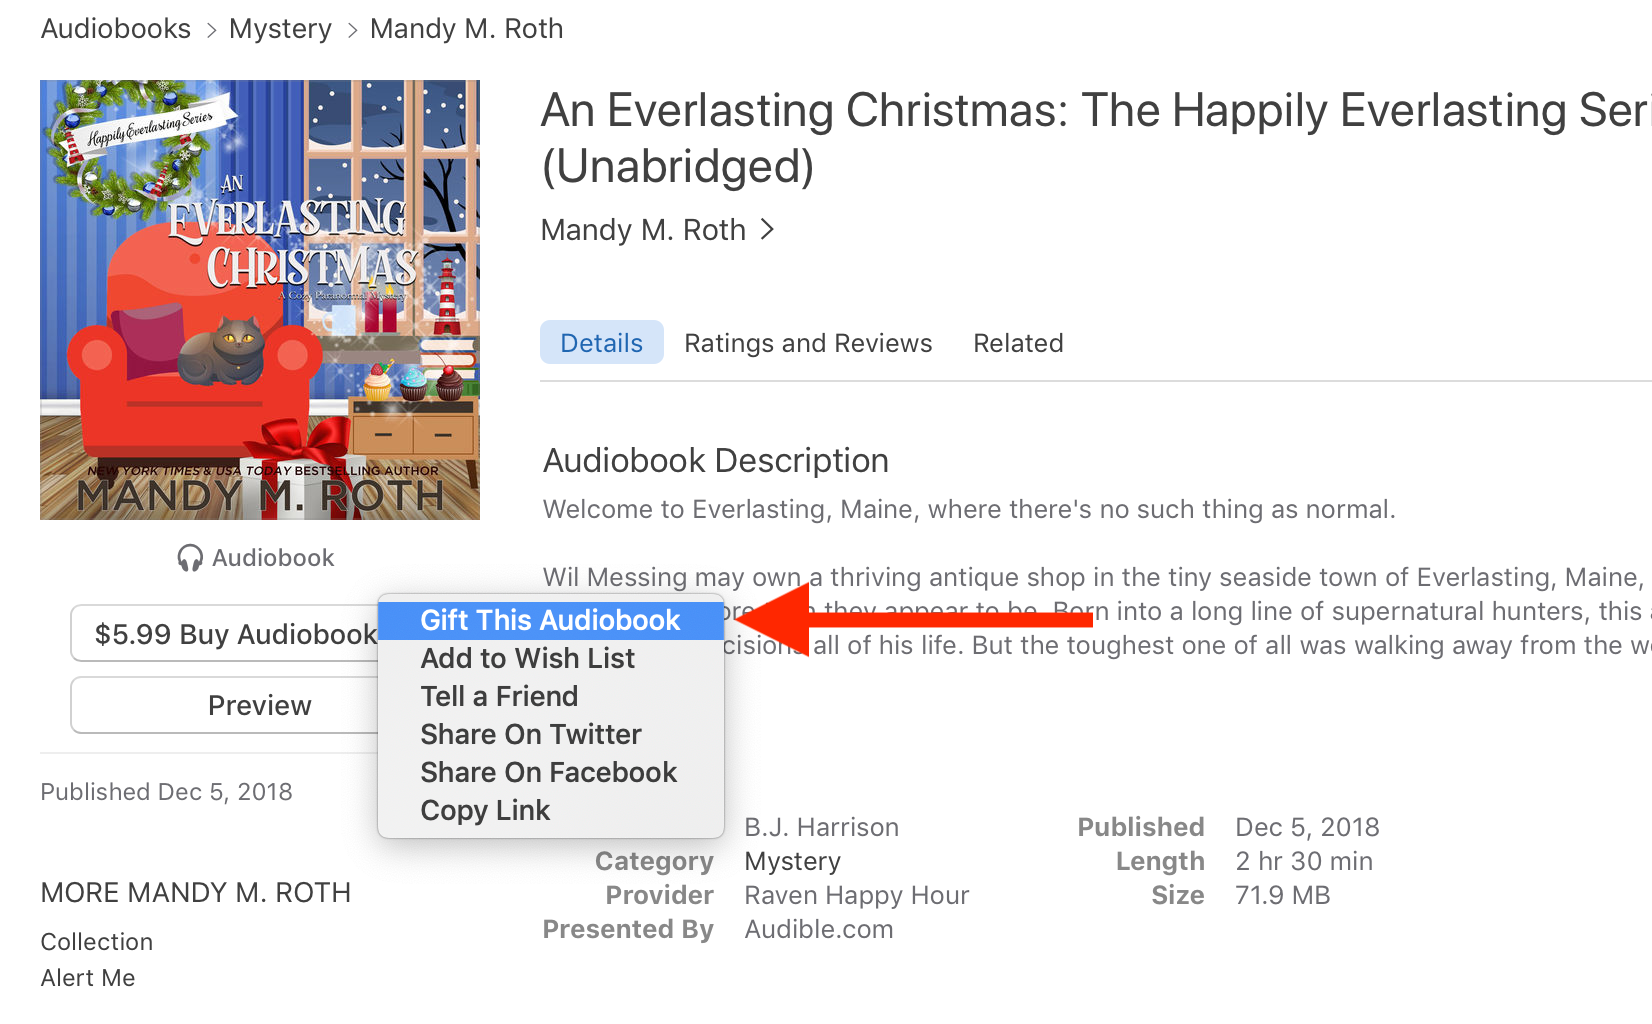 How to Gift an Audiobook